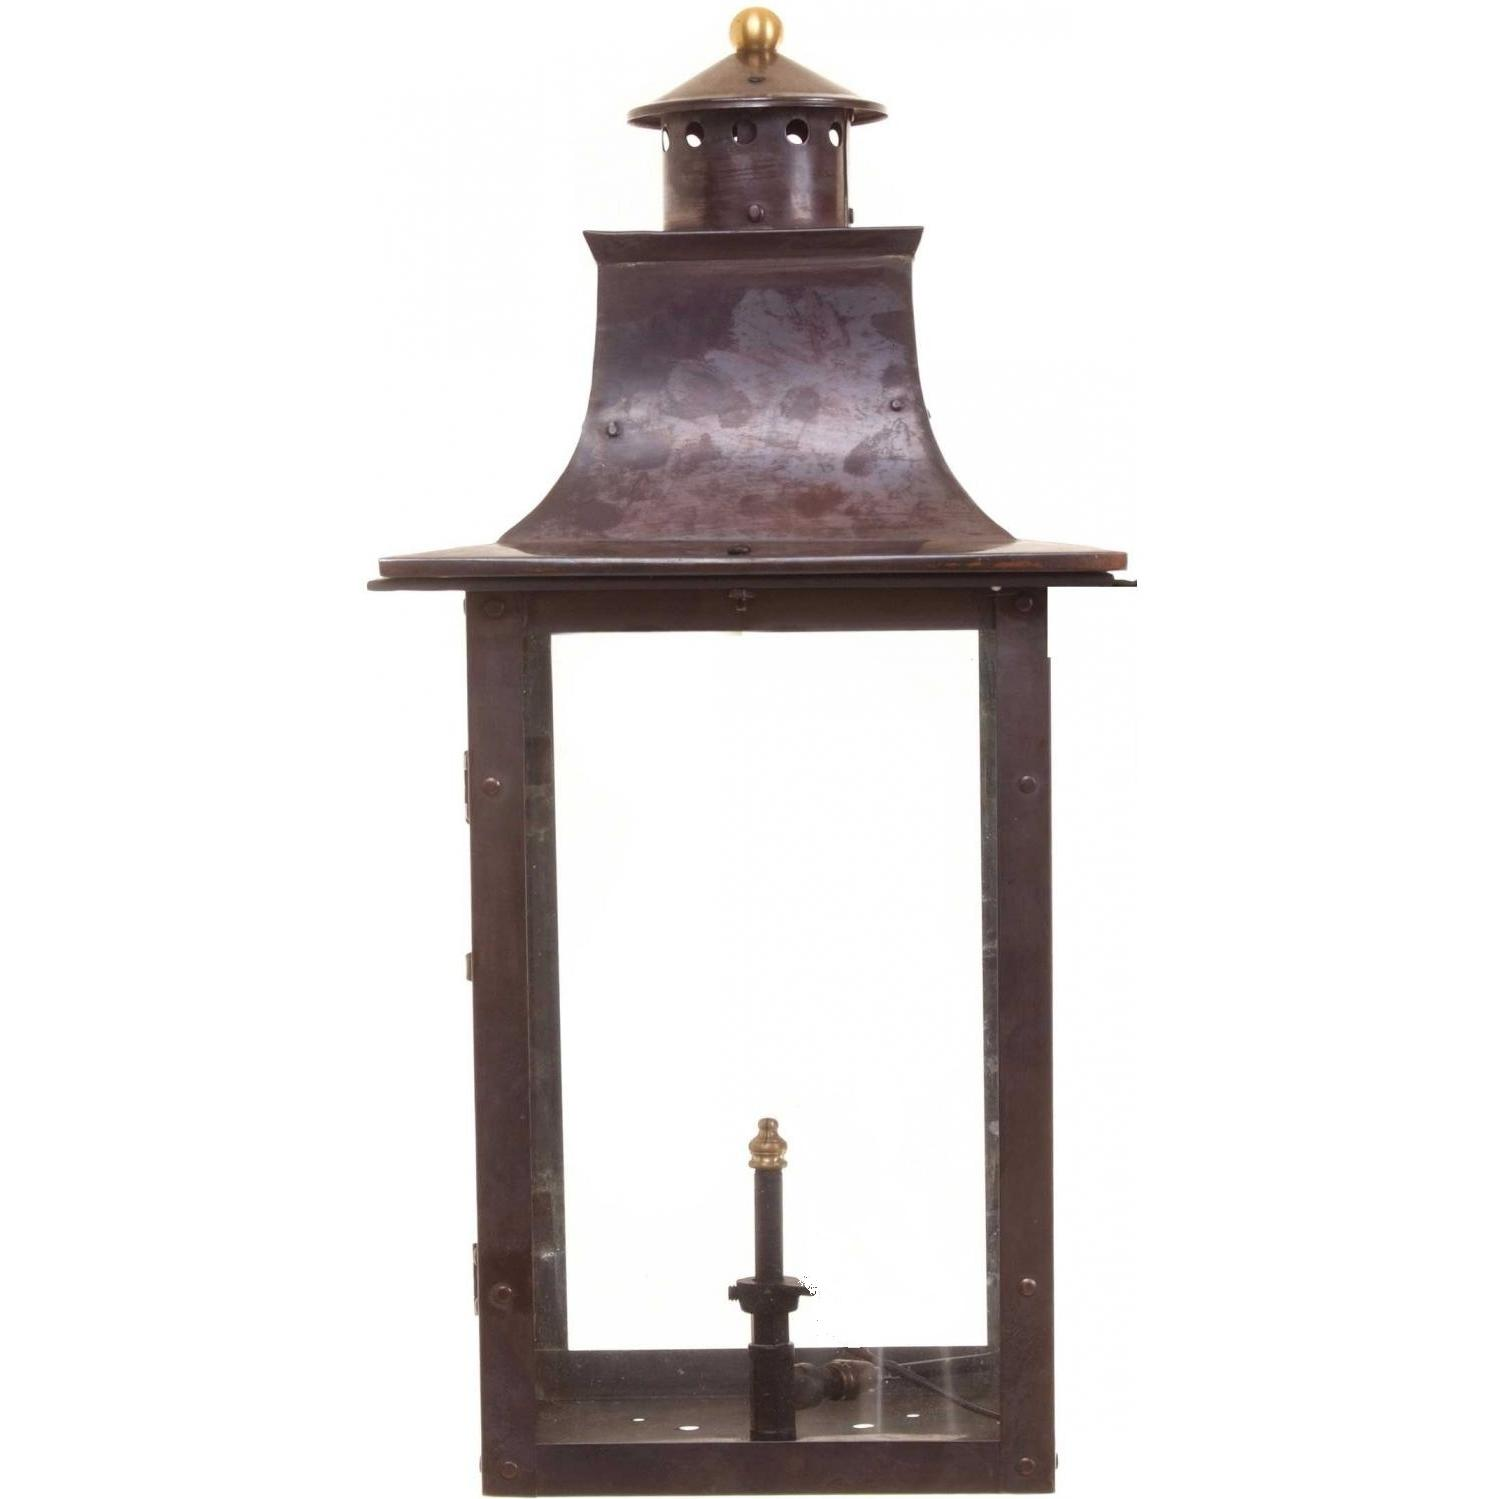 Regency GL21 Faye Rue Small Natural Gas Light With Open Flame Burner And Manual Ignition For Post Mount